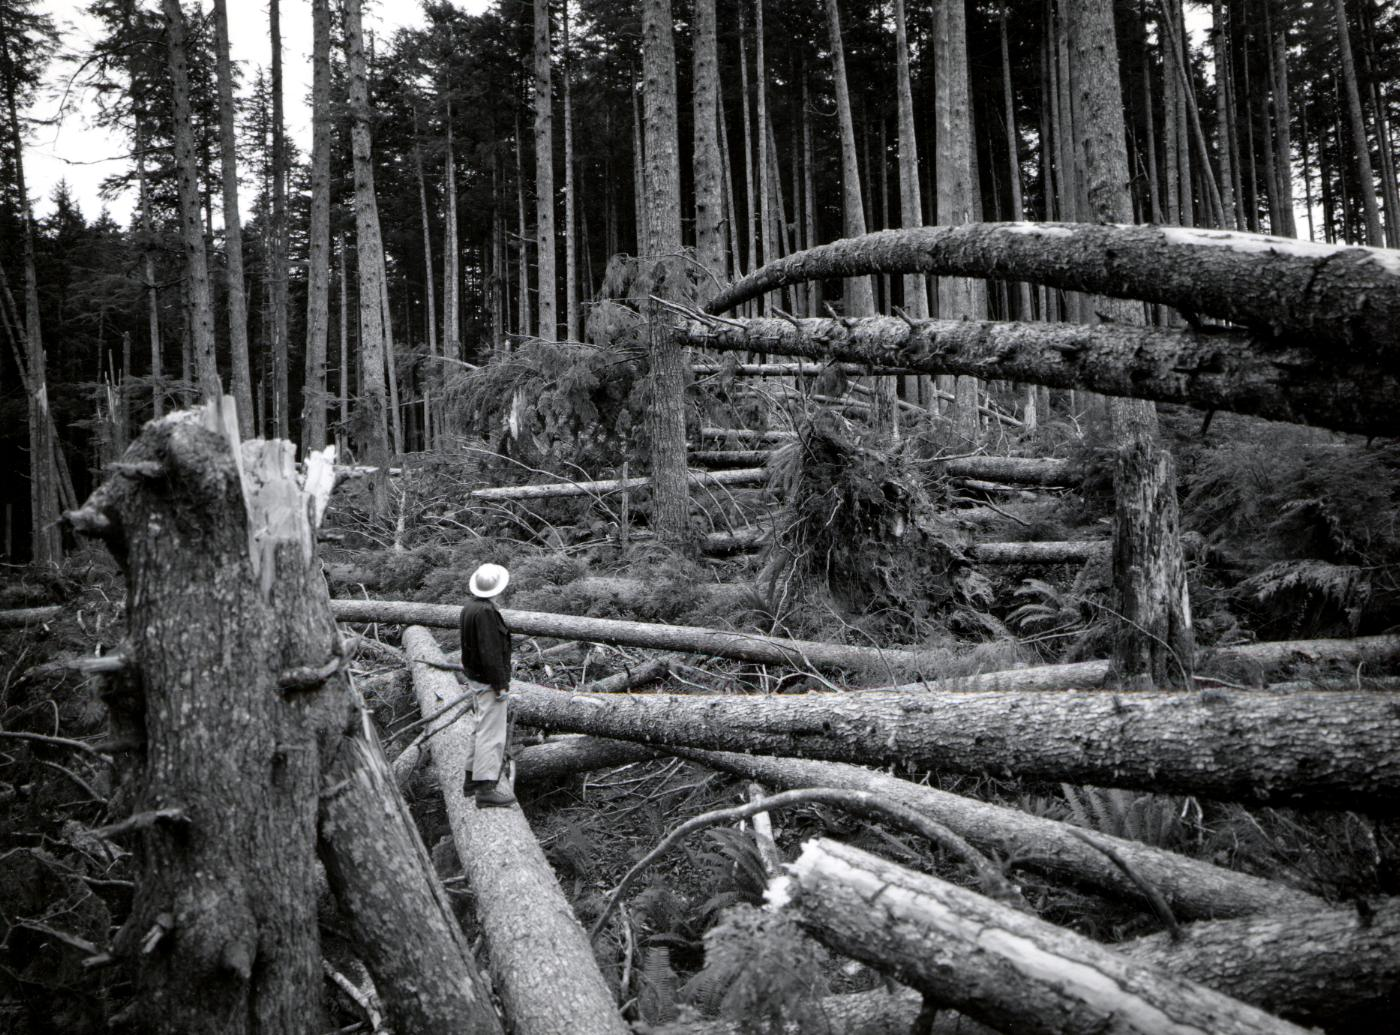 Blowdown from Columbus Day storm that happened October 12, 1962. Hebo Ranger District, Siuslaw National Forest, Oregon. Photo by Wally C. Guy